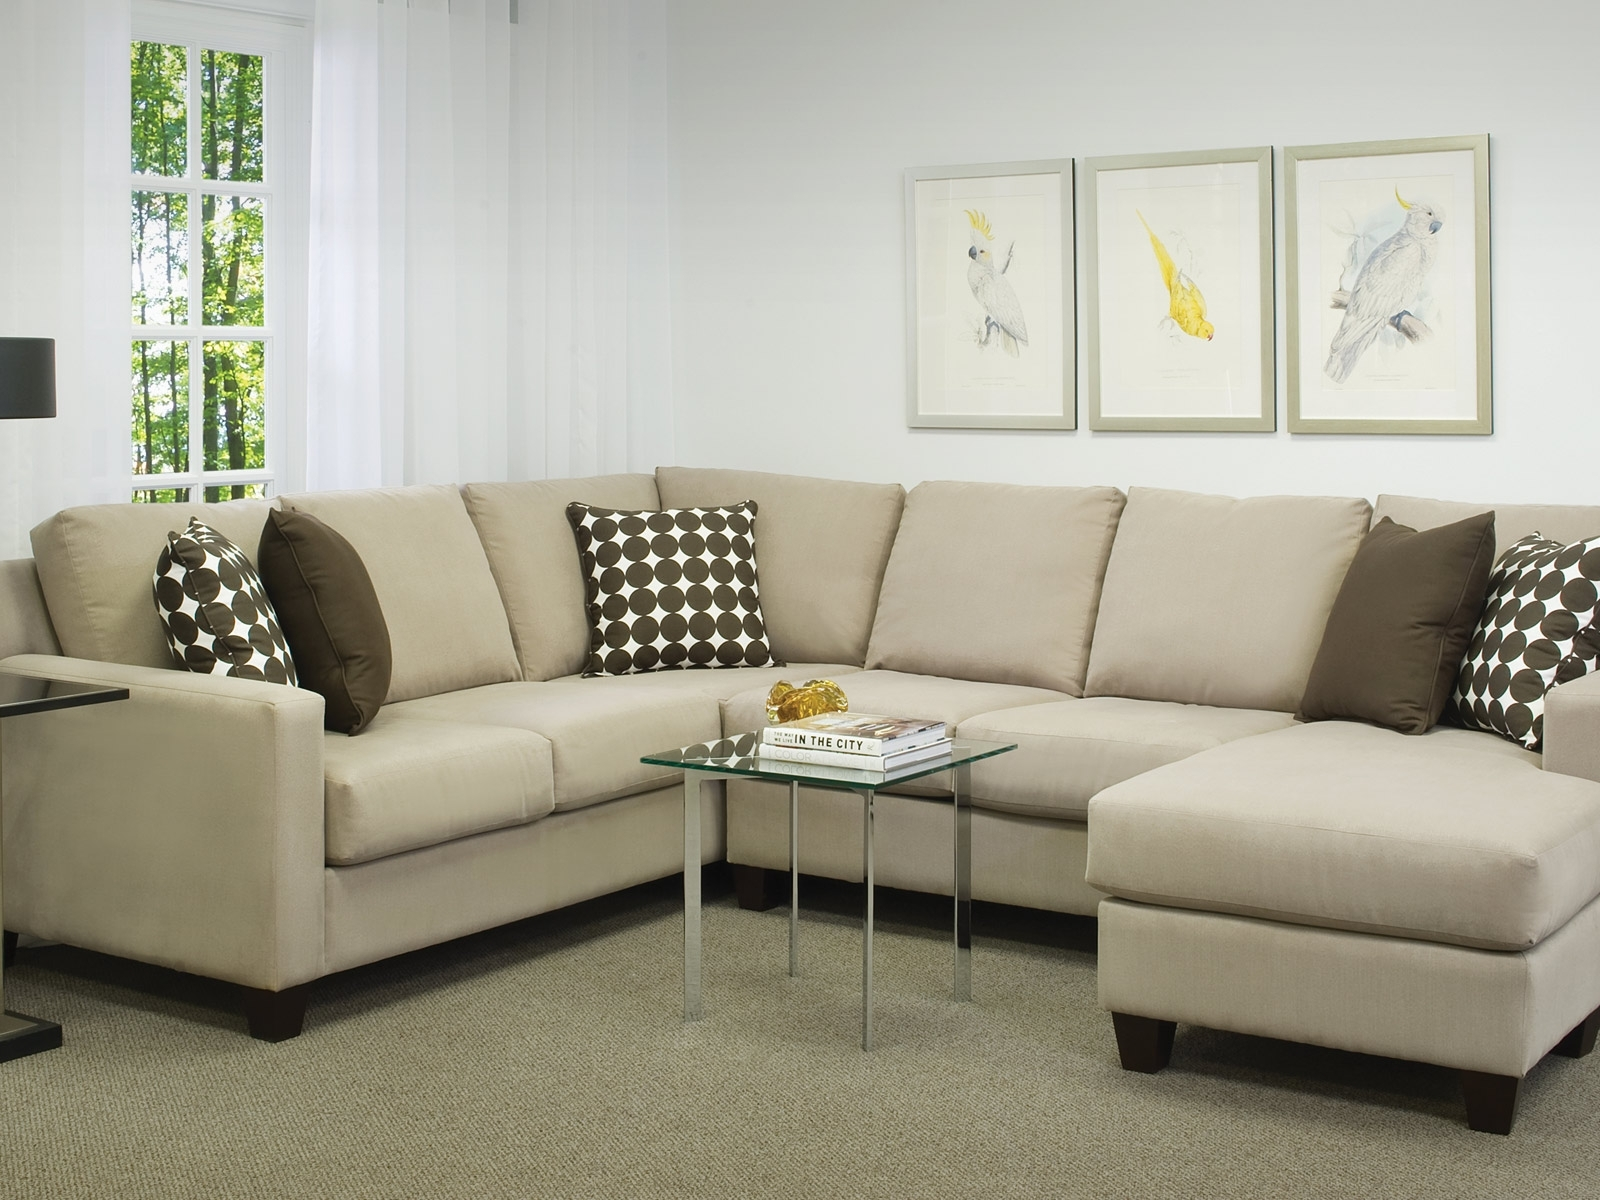 Collections – Manorhouse Furniture – Halifax, Nova Scotia With Regard To Halifax Sectional Sofas (View 4 of 10)